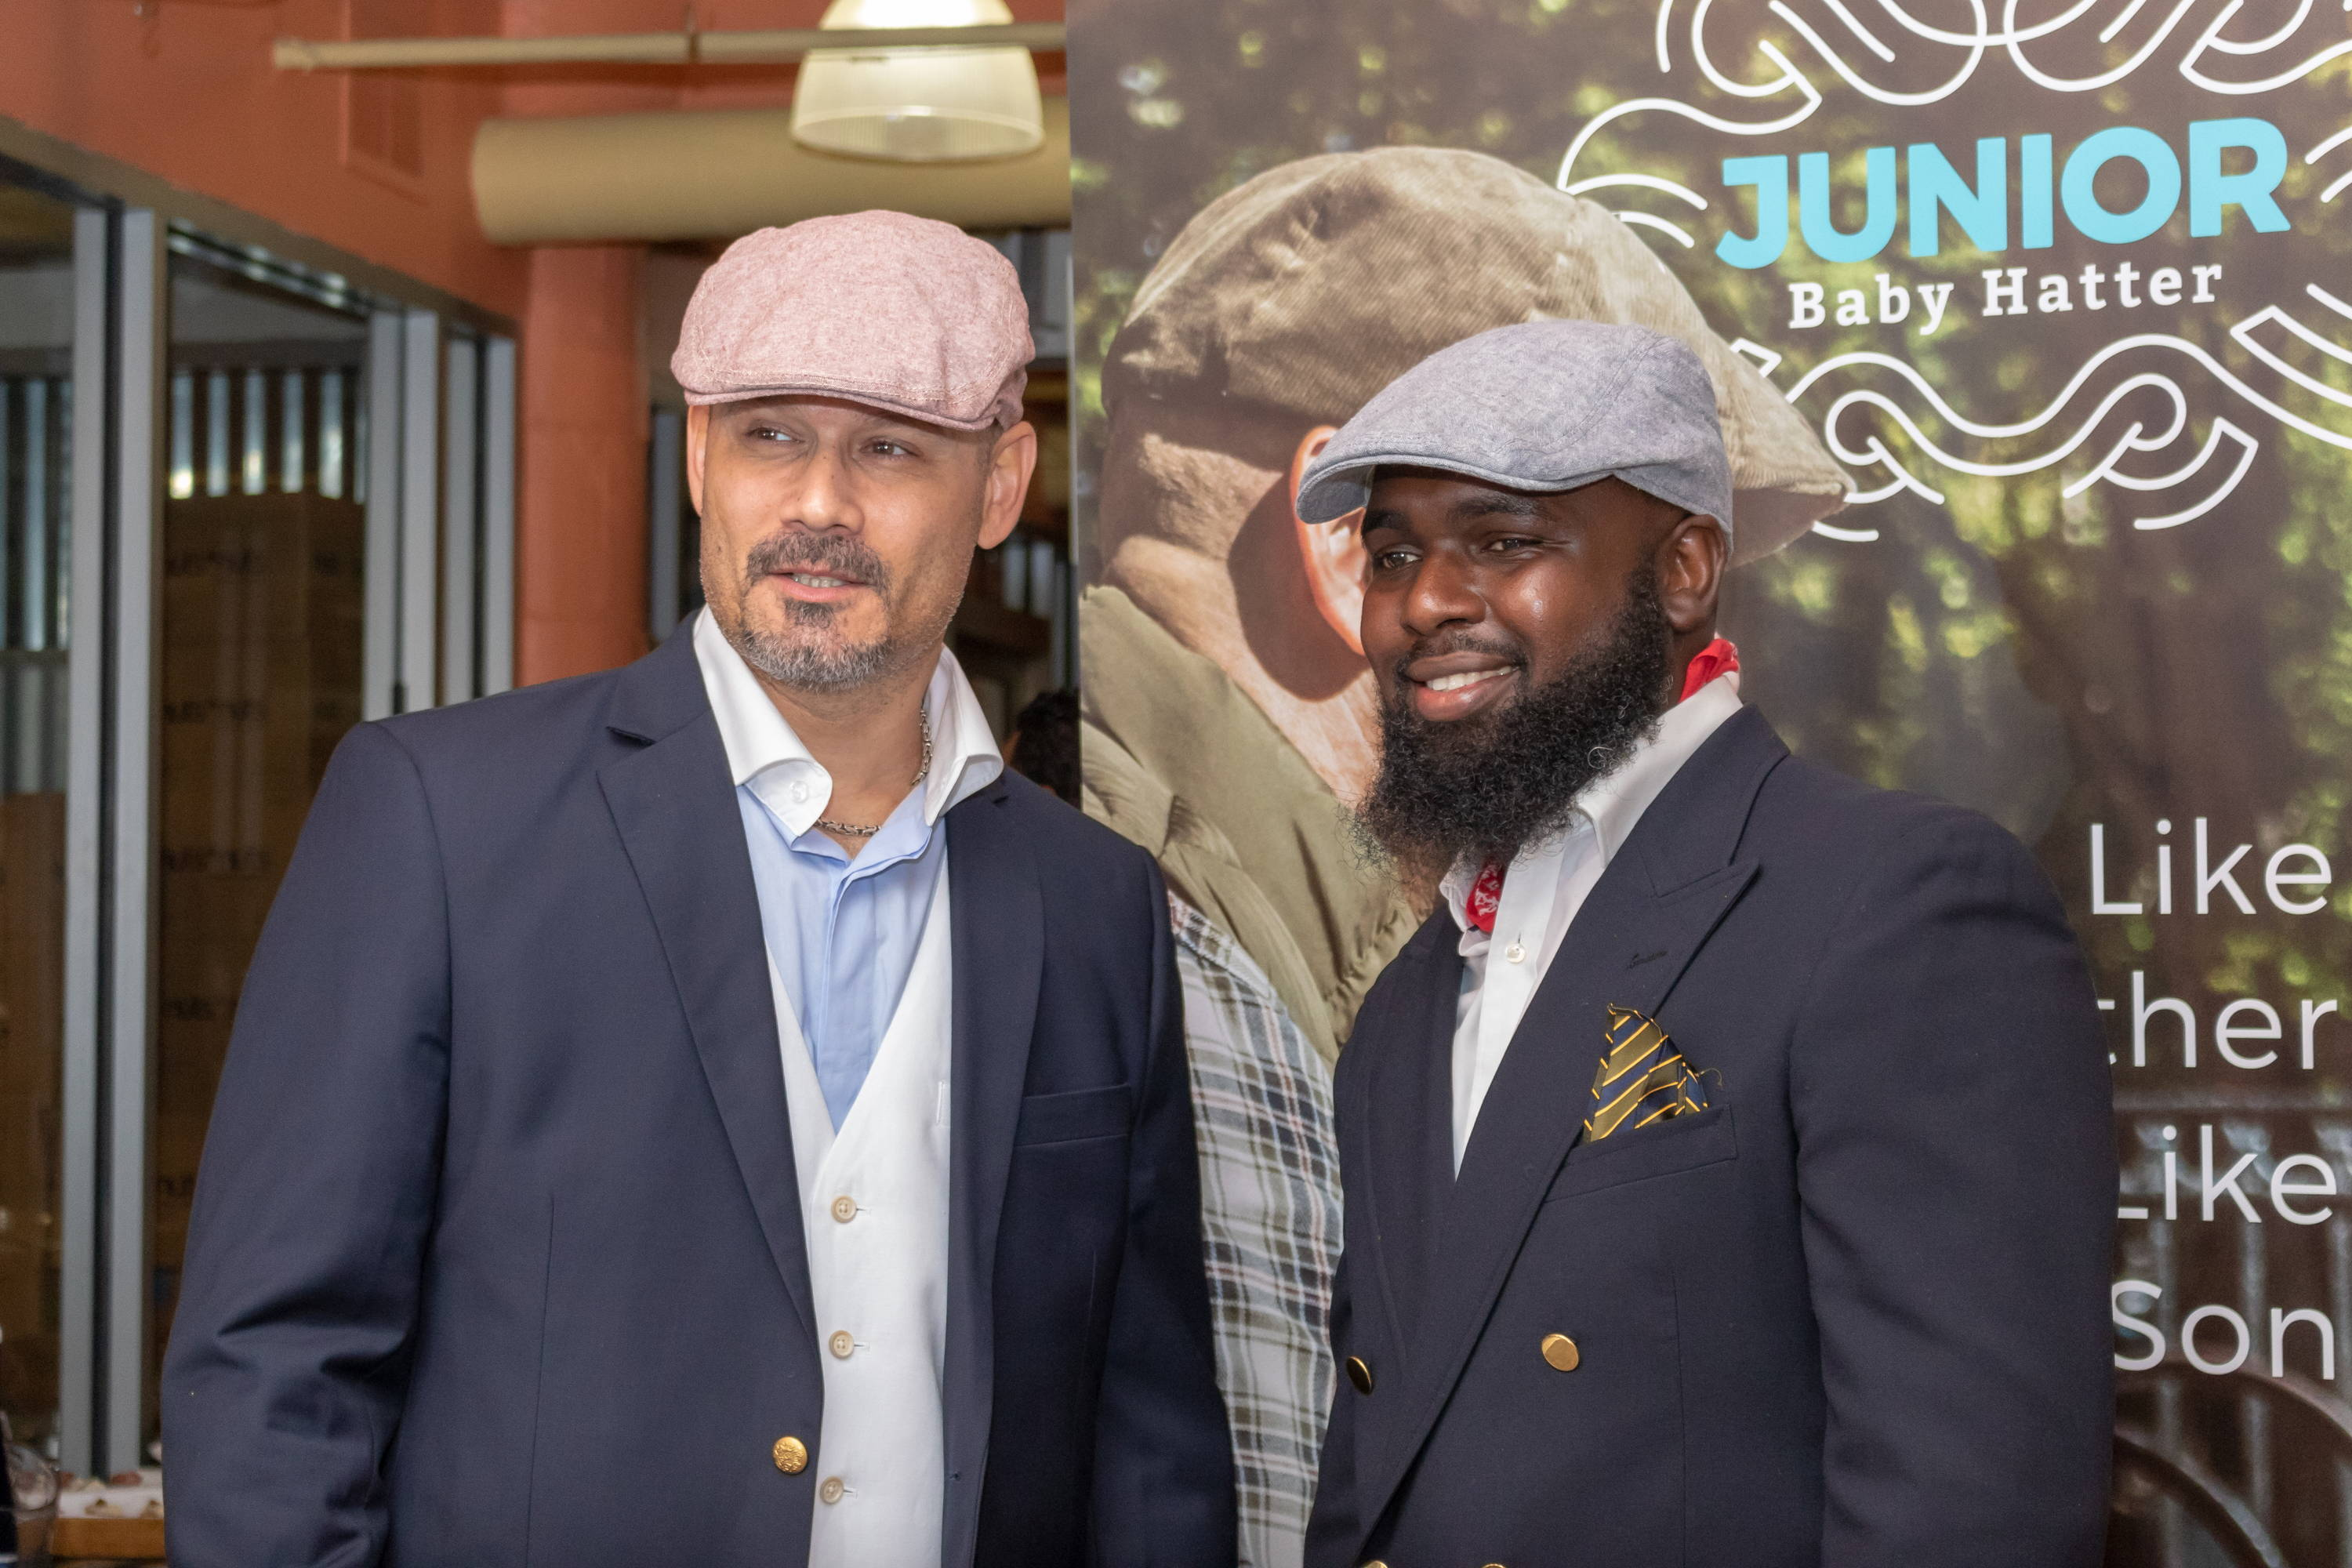 Junior Baby Hatter hosts Father's Day Pop Up and Dapper Dad Meet up